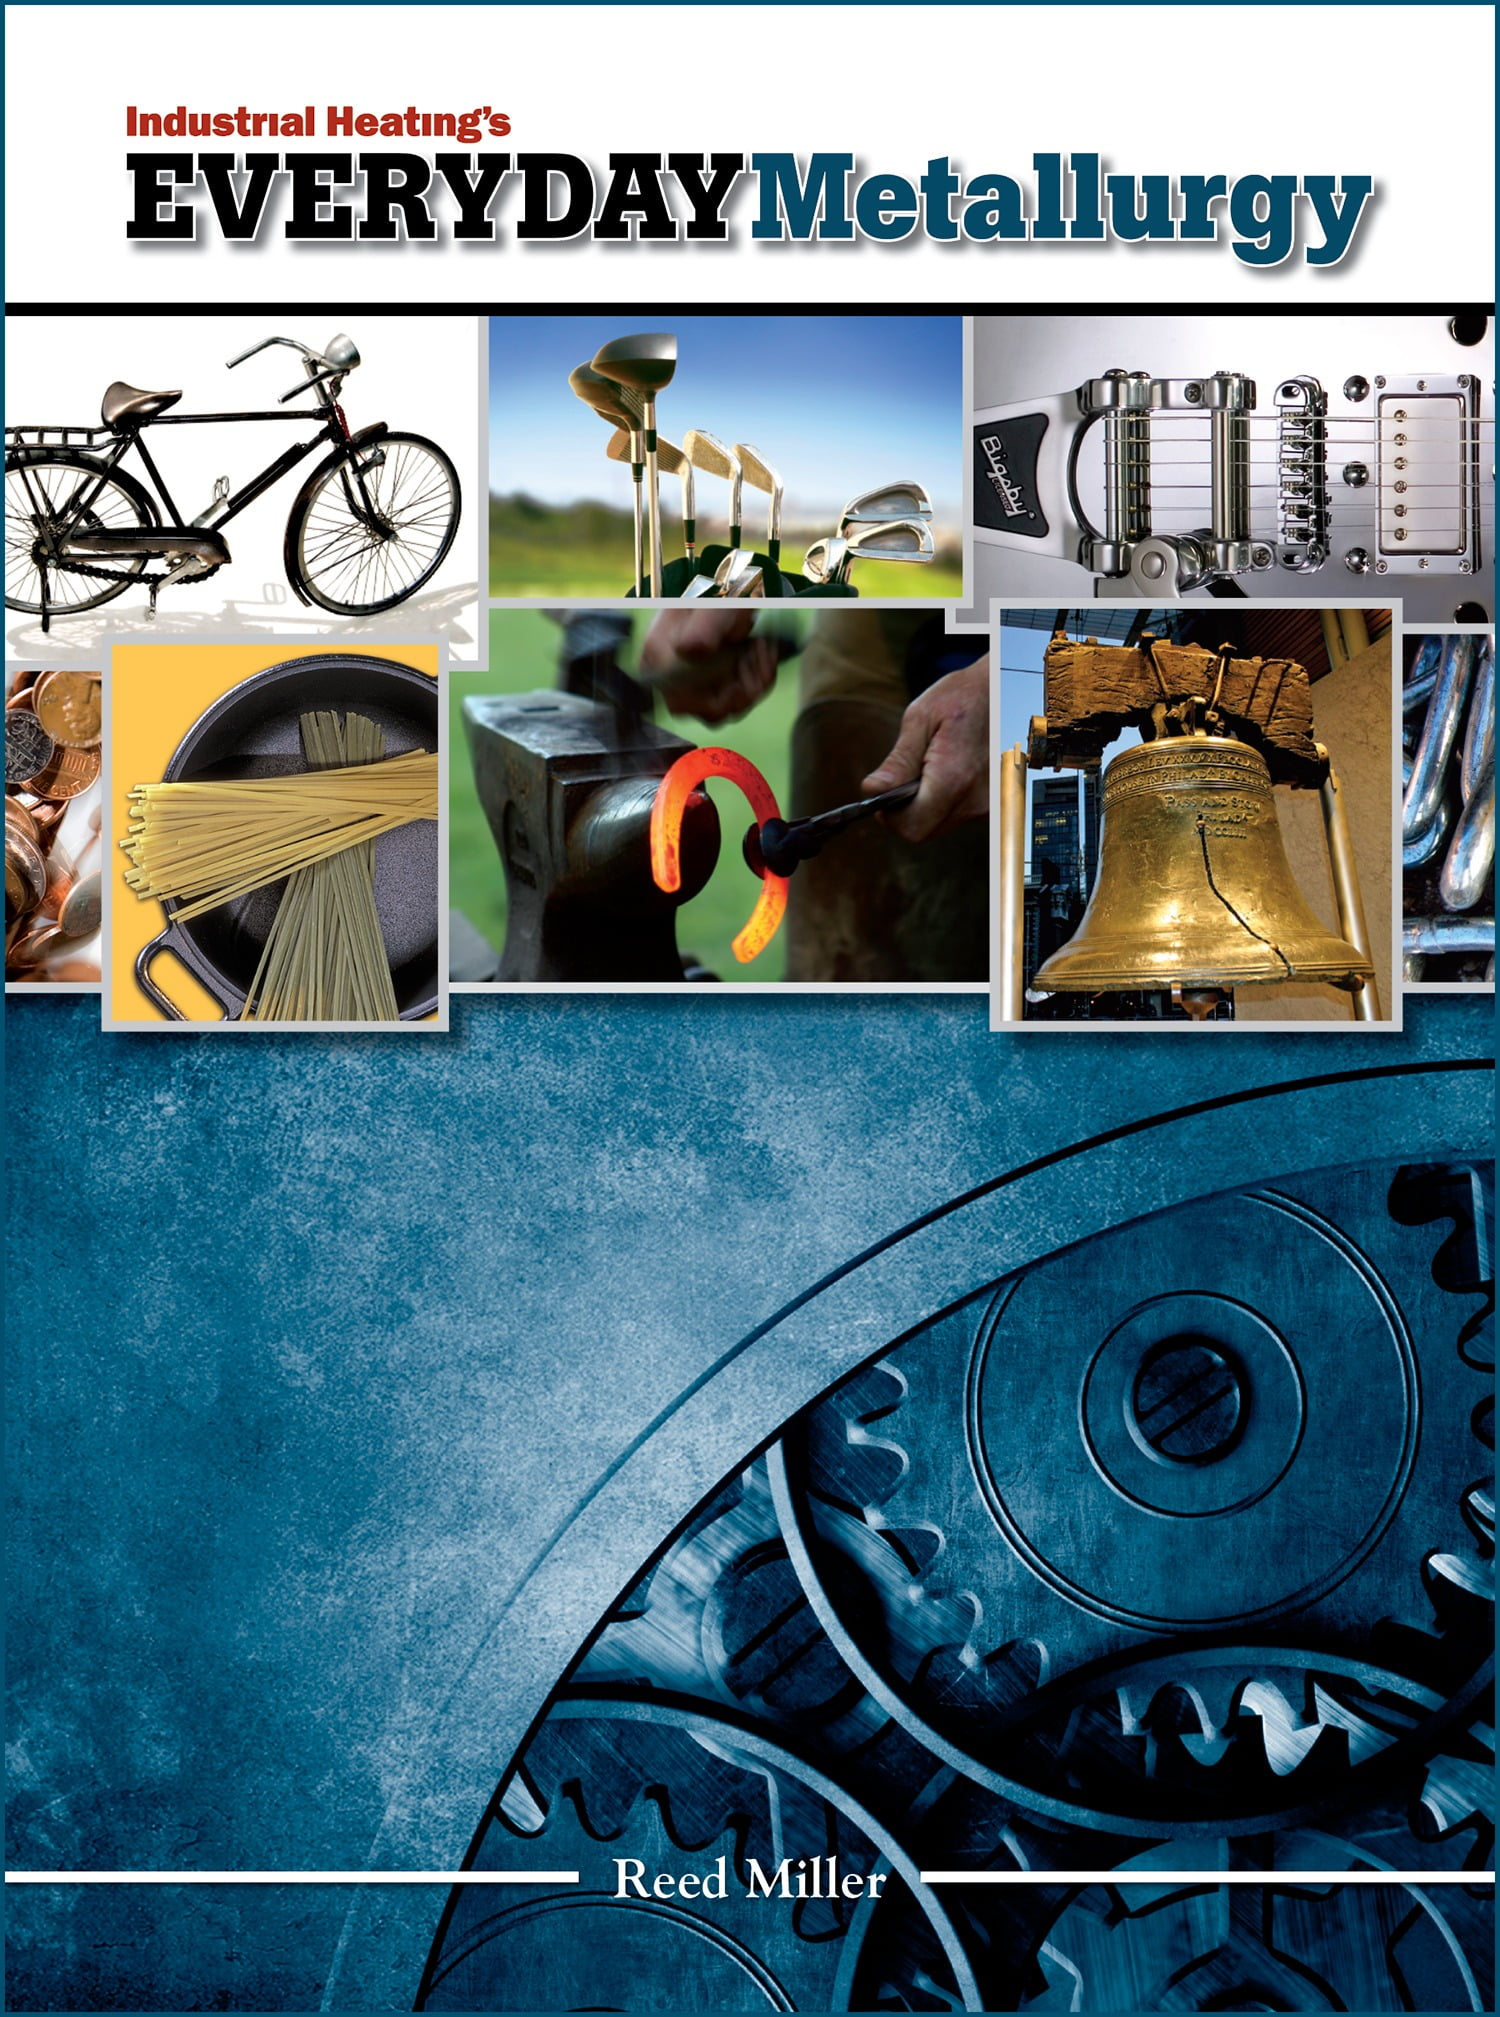 Bicycles--Equipment and supplies, Bicycle tire, Wheel, Product, Organism, Font